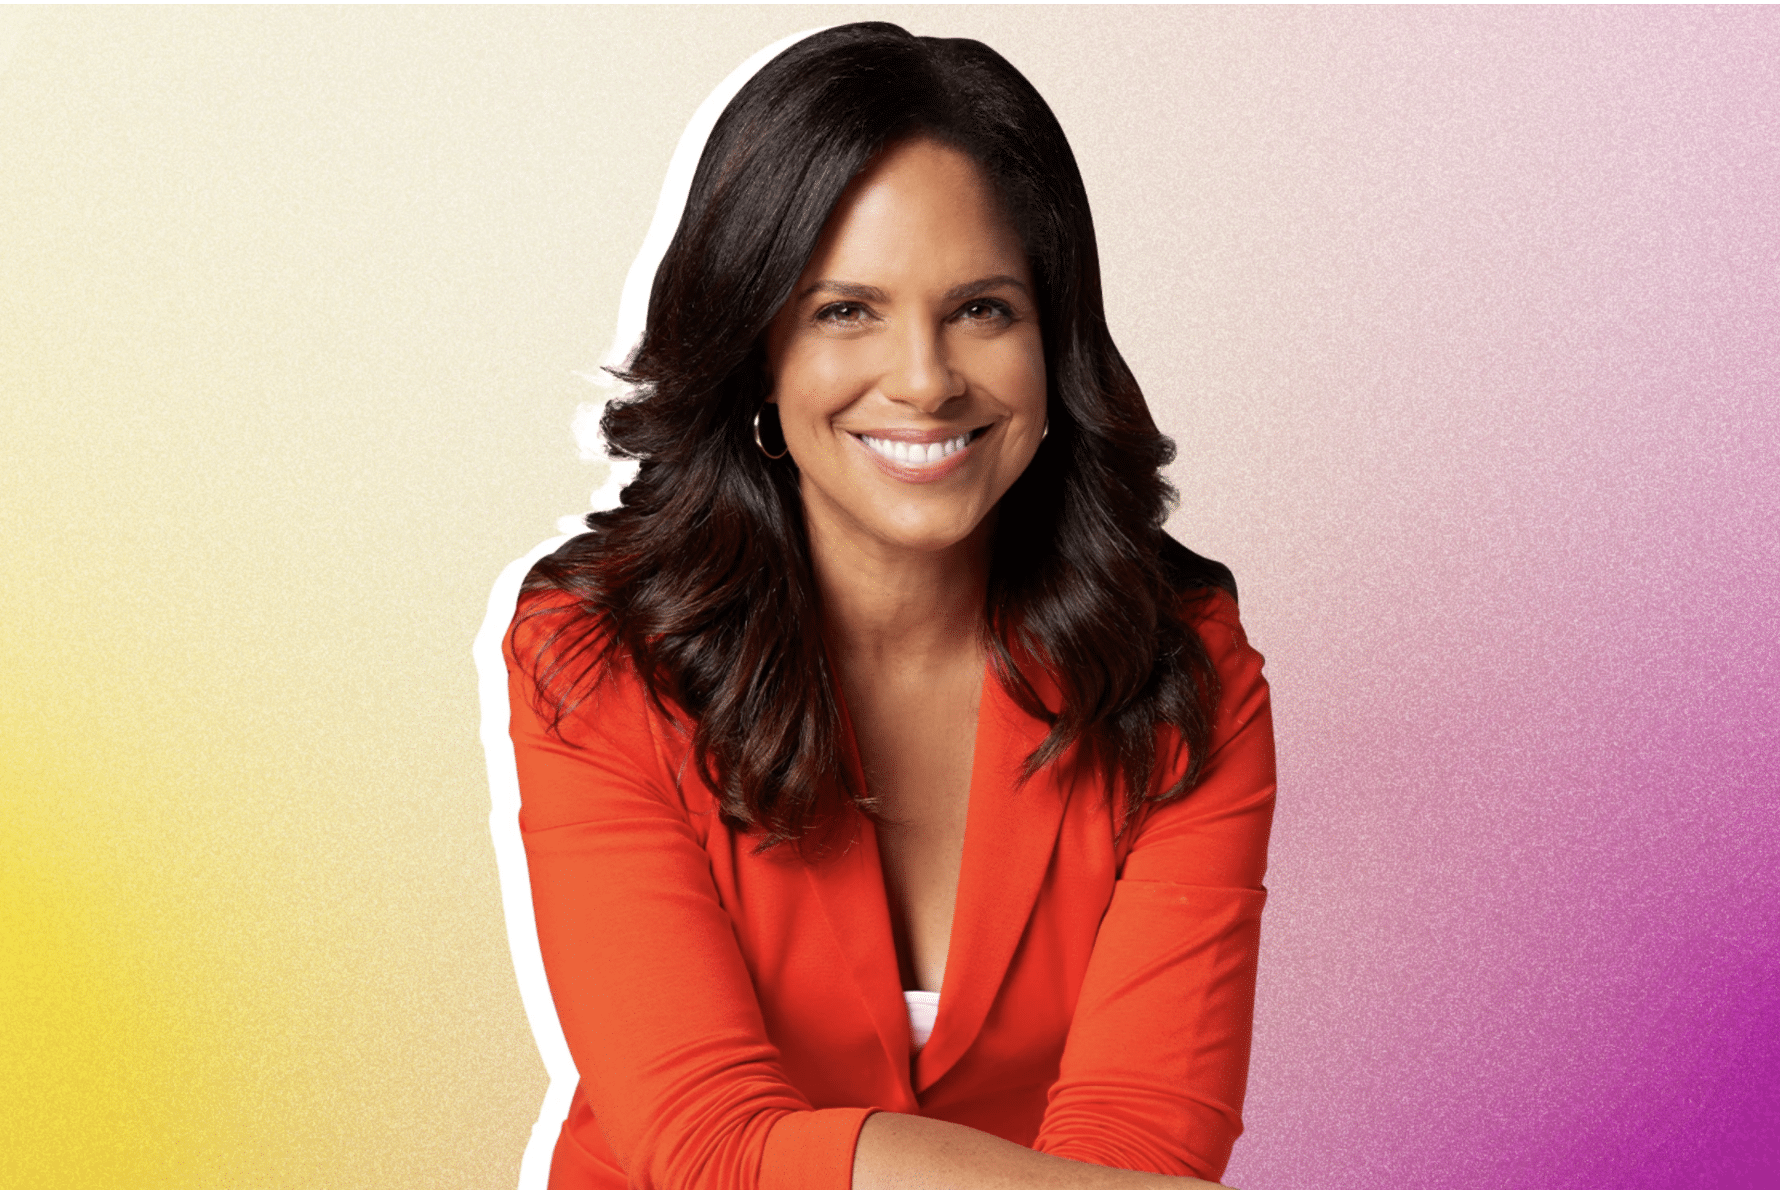 Us, Interrupted: How Soledad O'Brien Prioritizes Well-Being Amid COVID-19